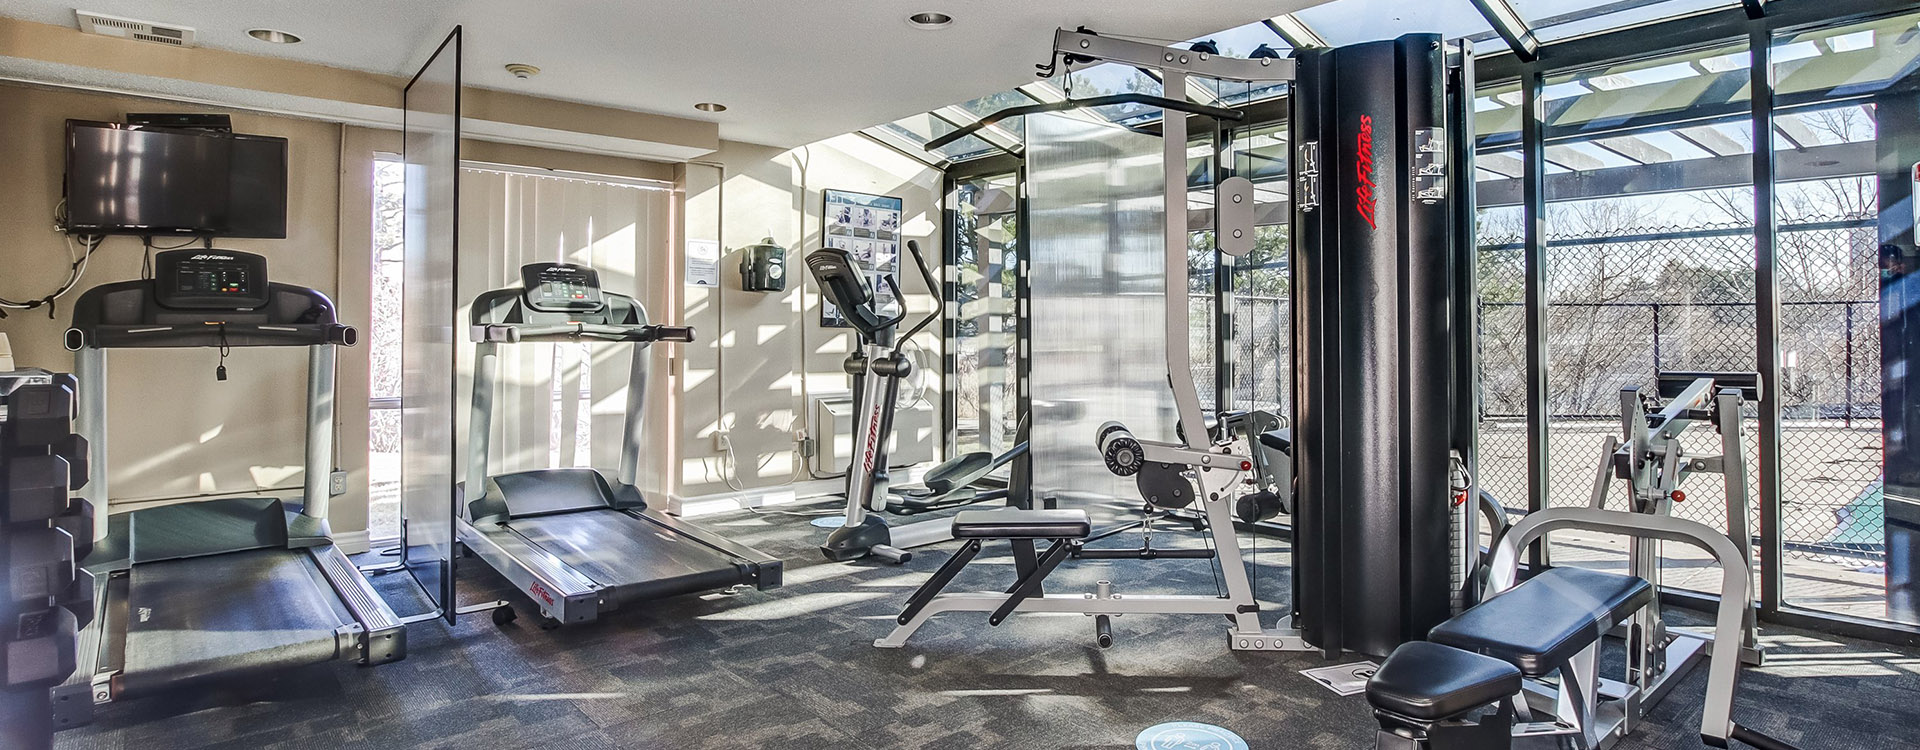 Fitness room at Aquitaine Apartments in Toronto. Rent with Minto Apartments.